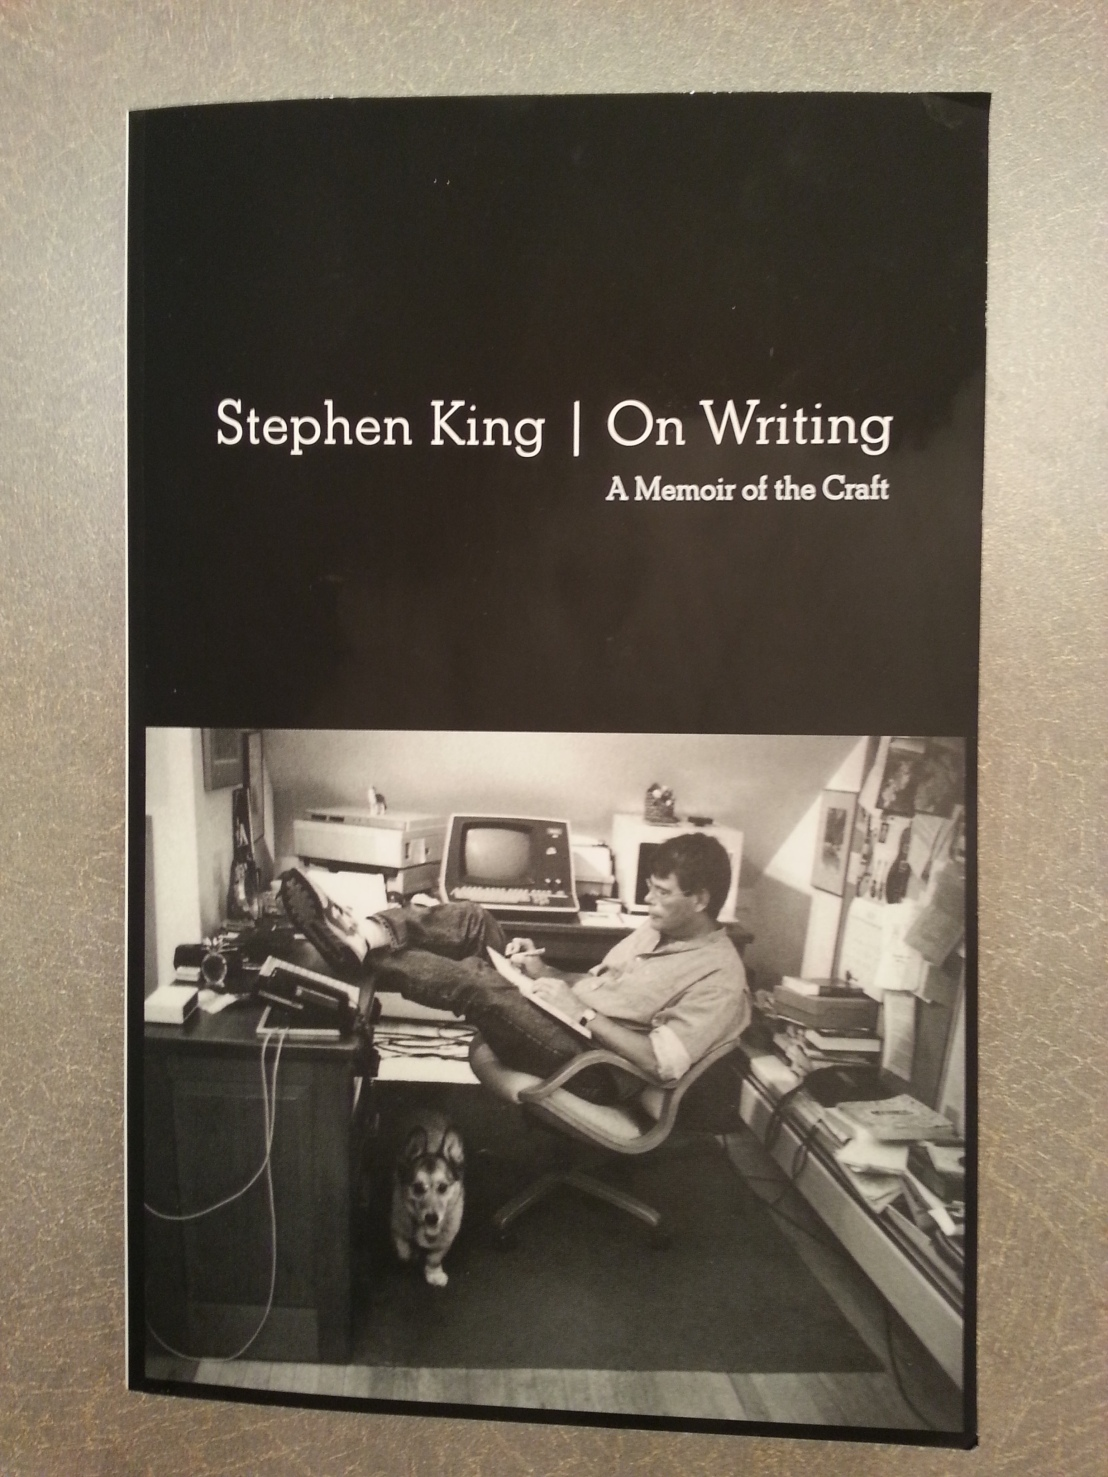 Stephen King's — On Writing